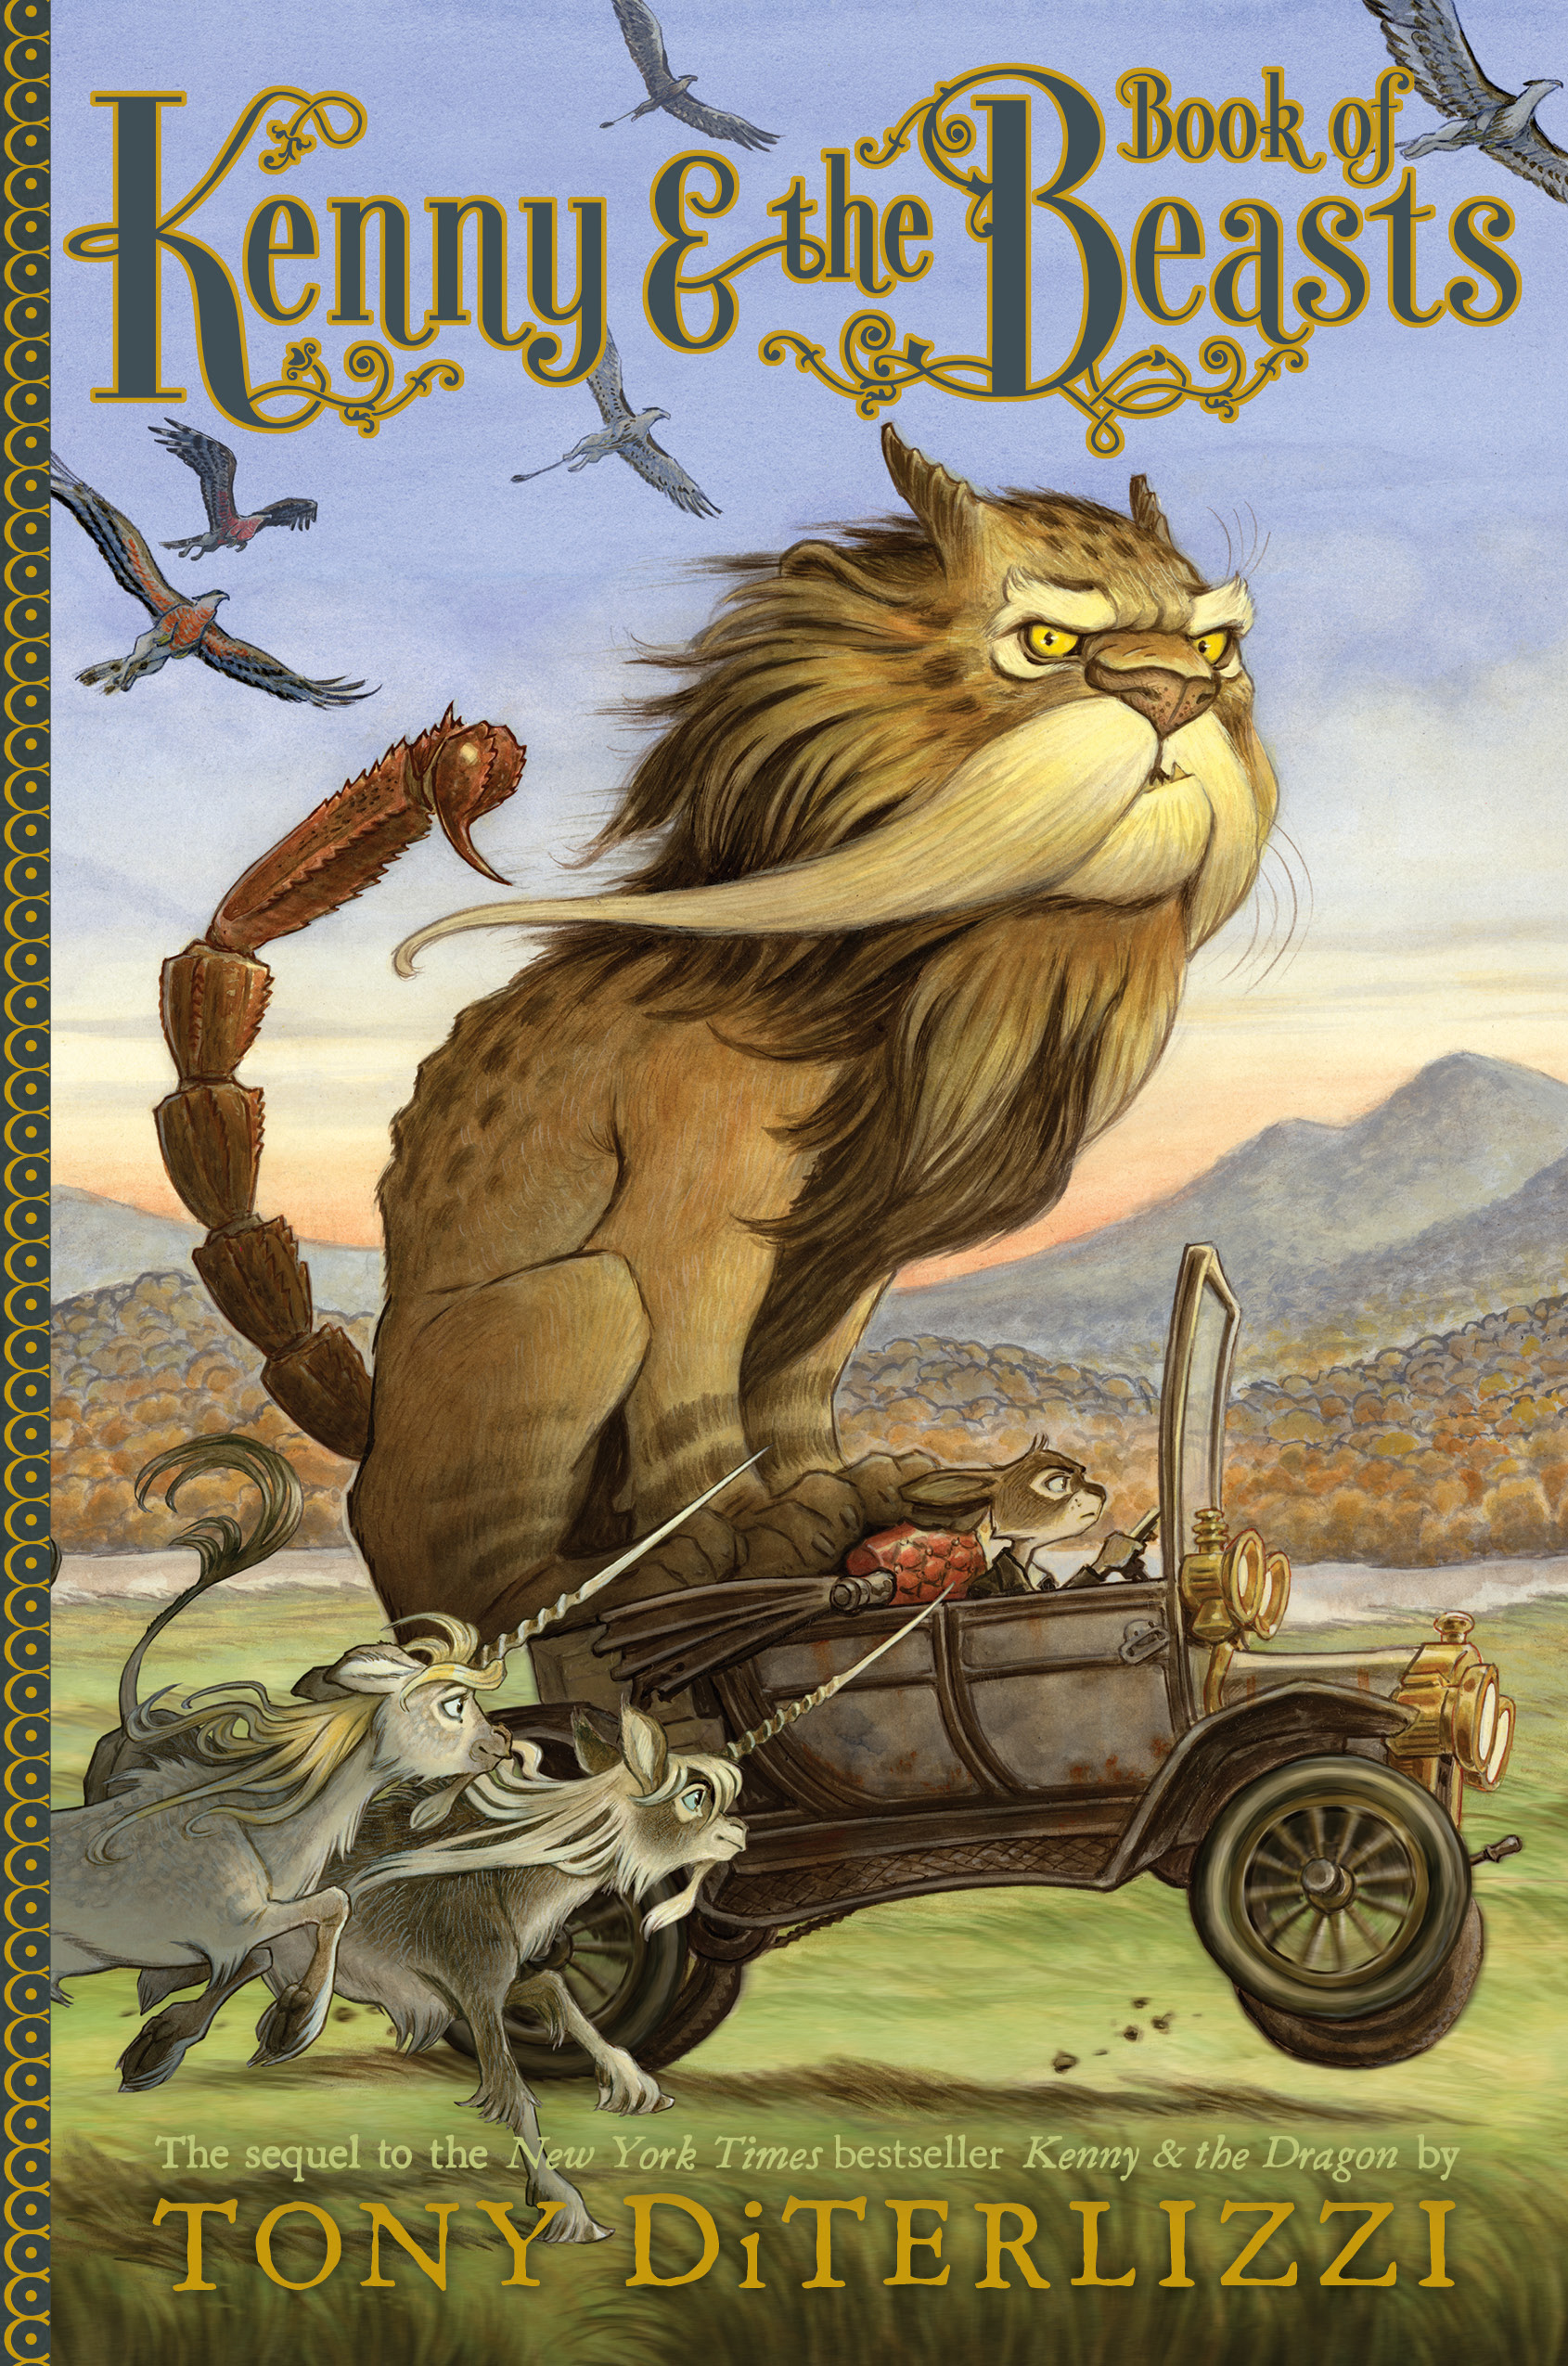 Interview with Tony DiTerlizzi, author of Kenny and the Book of Beasts